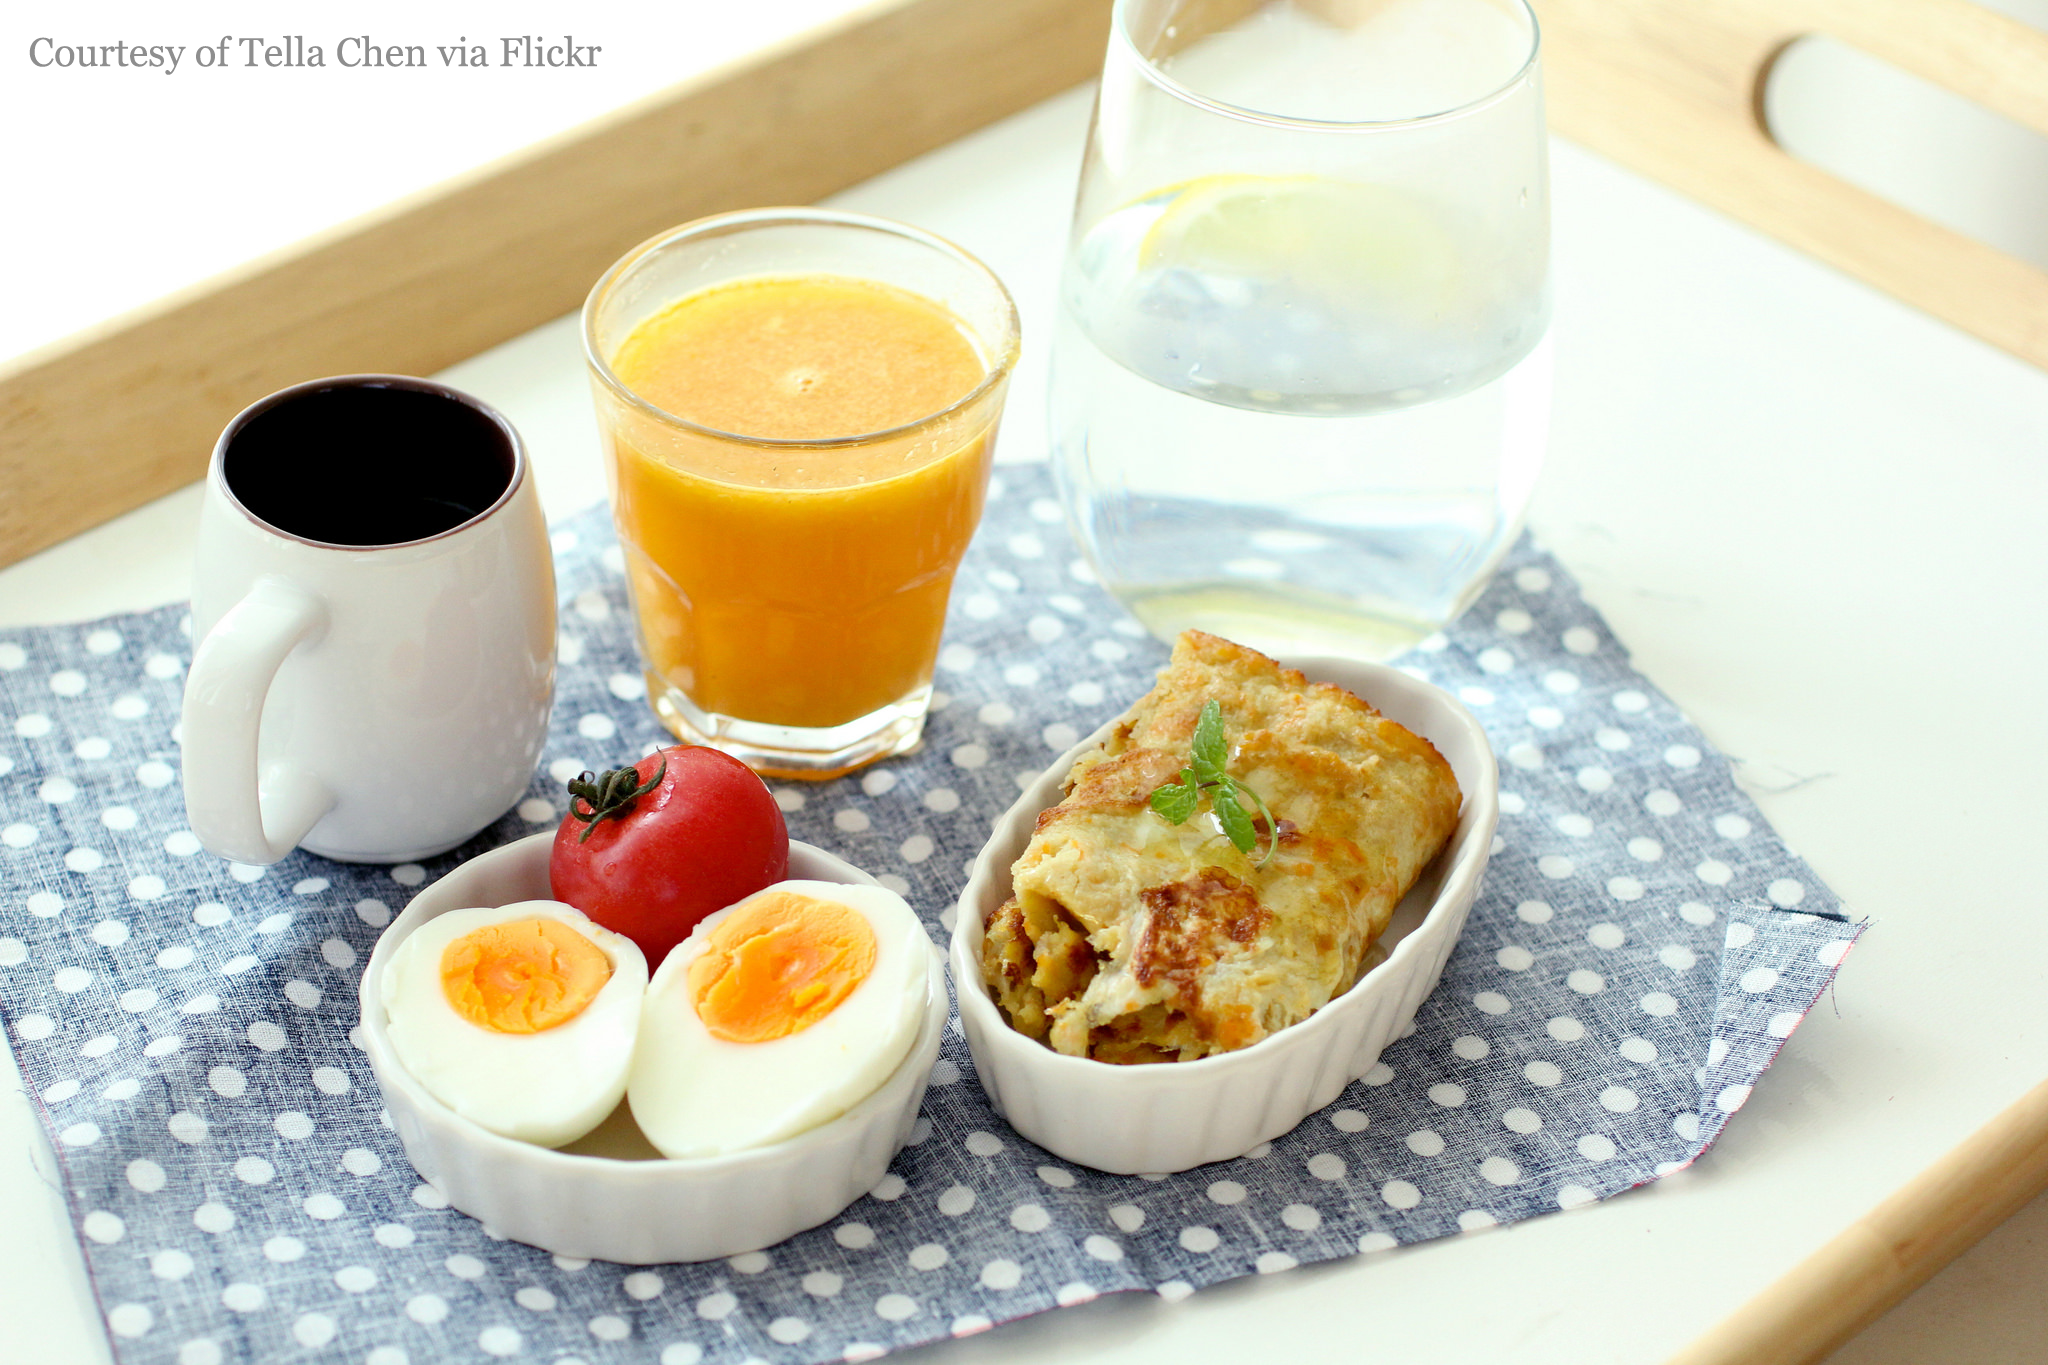 A healthy breakfast on display